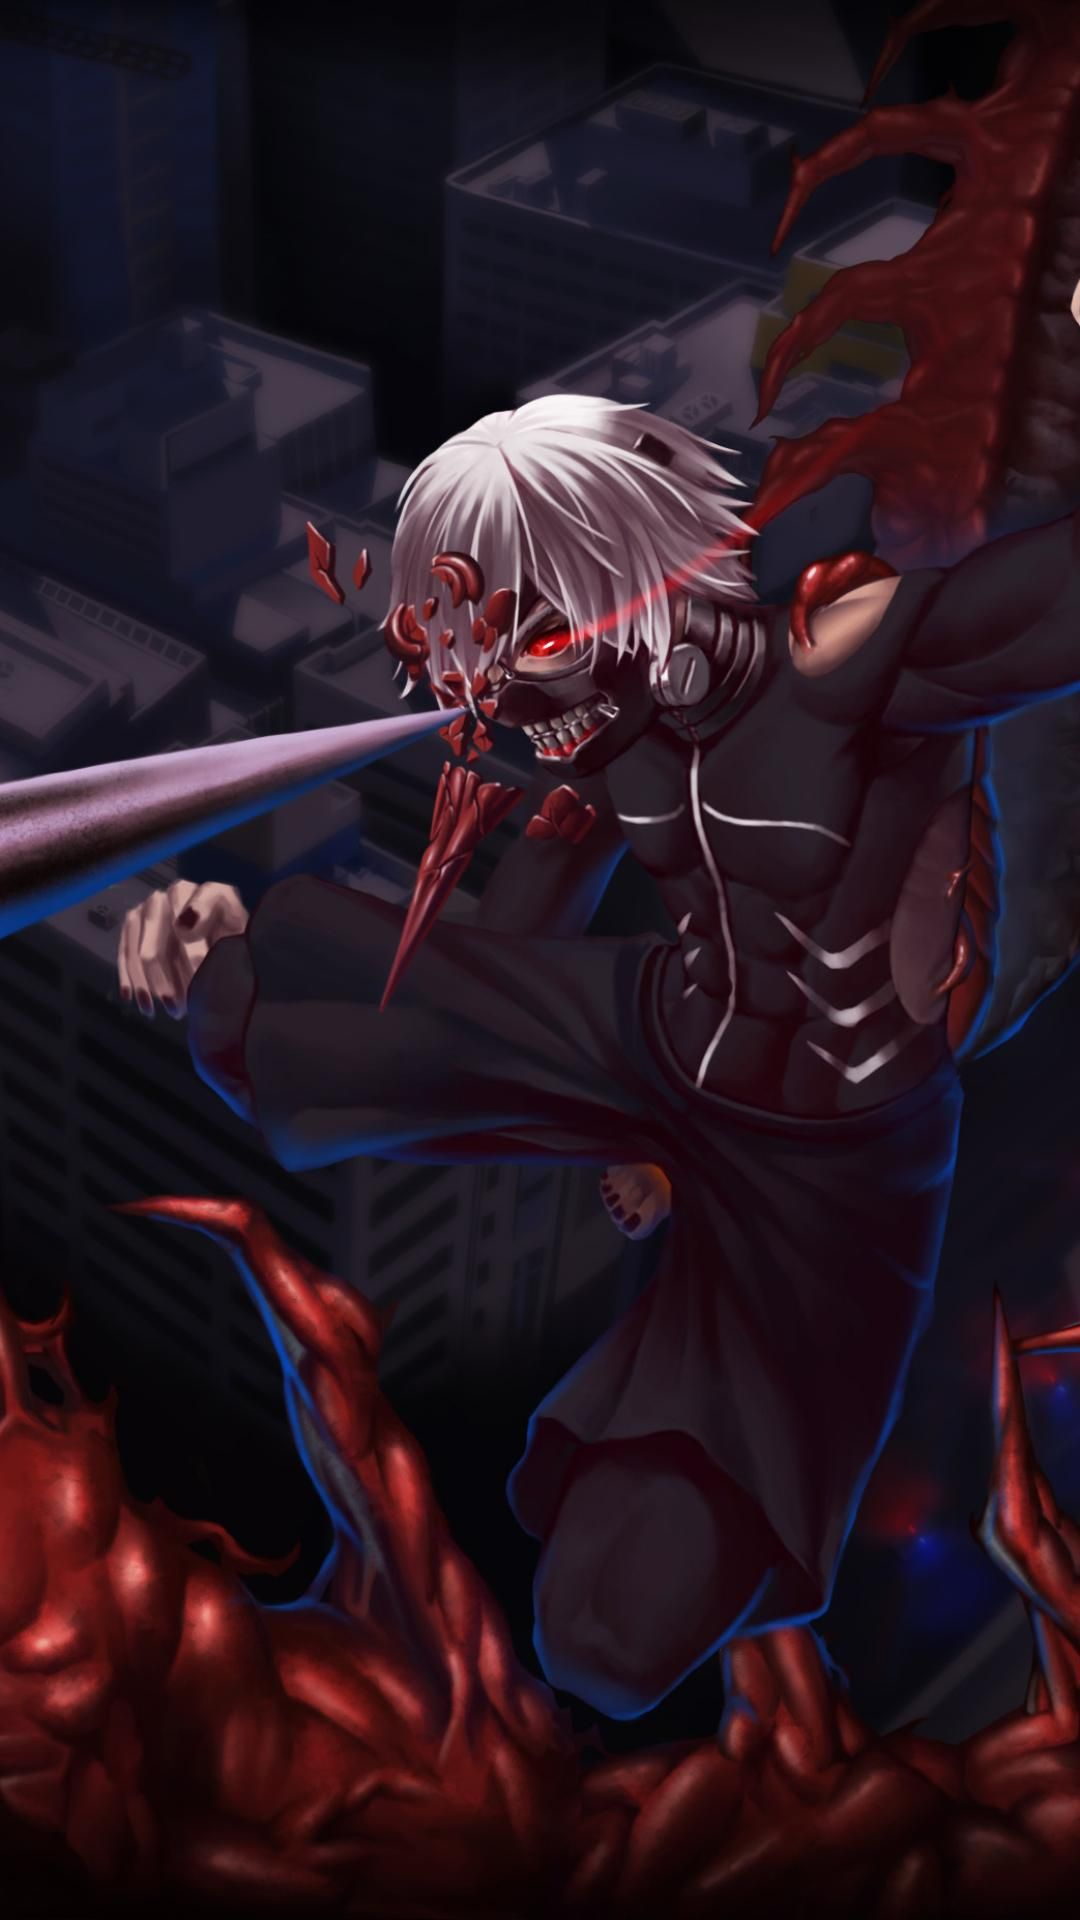 Tokyo Ghoul Hd Wallpaper For Android Tokyo ghoul